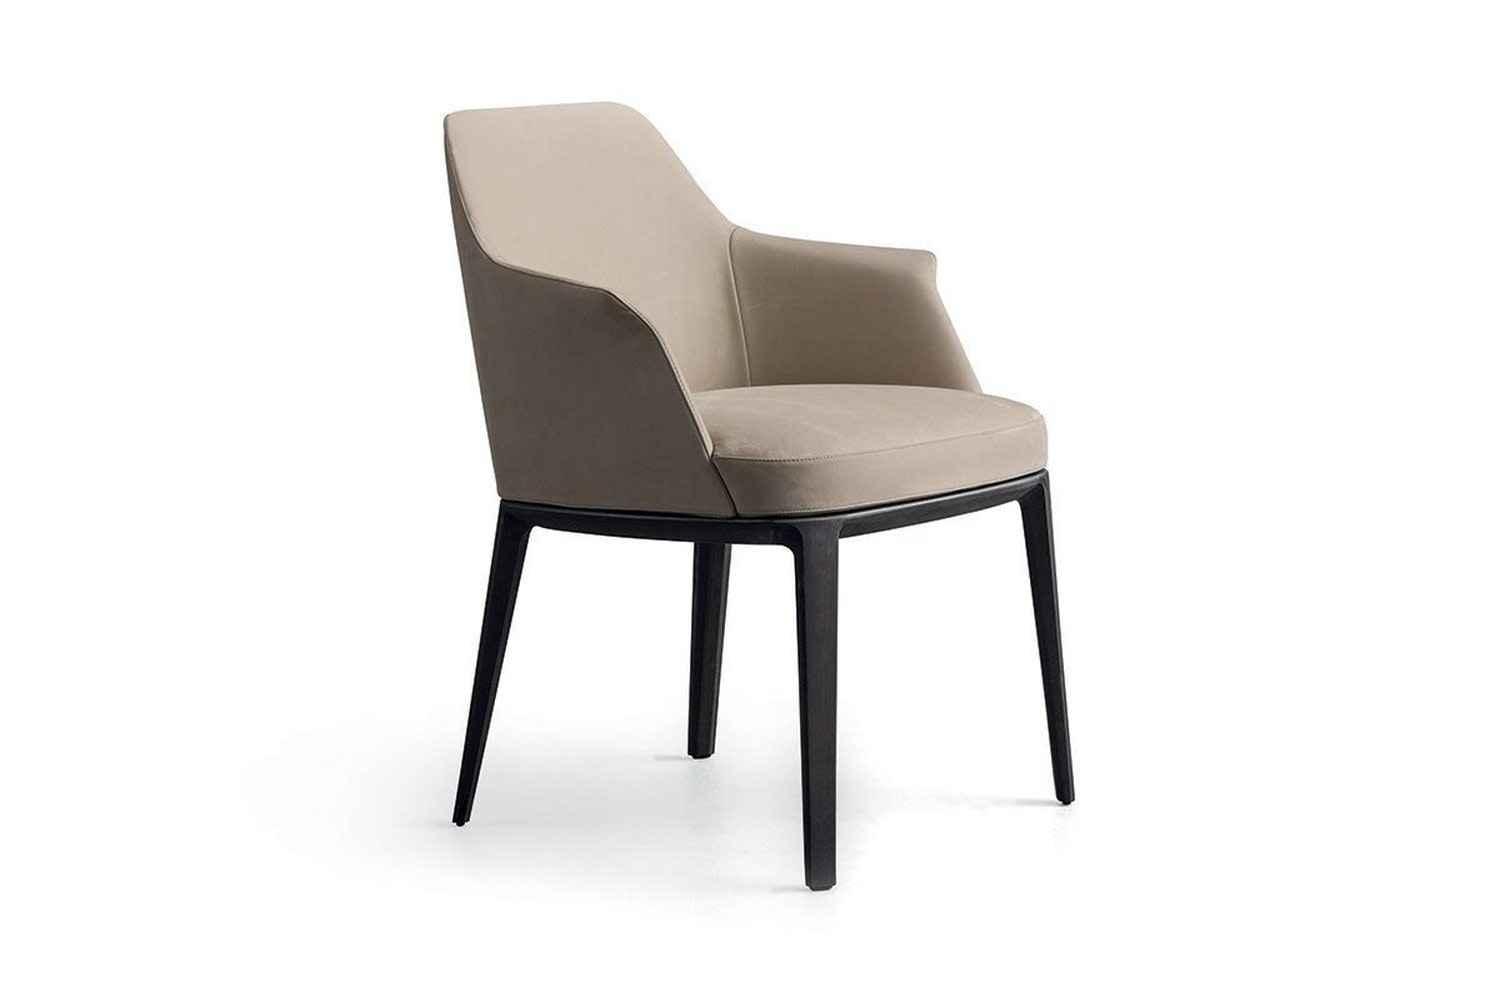 Sophie Chair with Arms by Emmanuel Gallina for Poliform